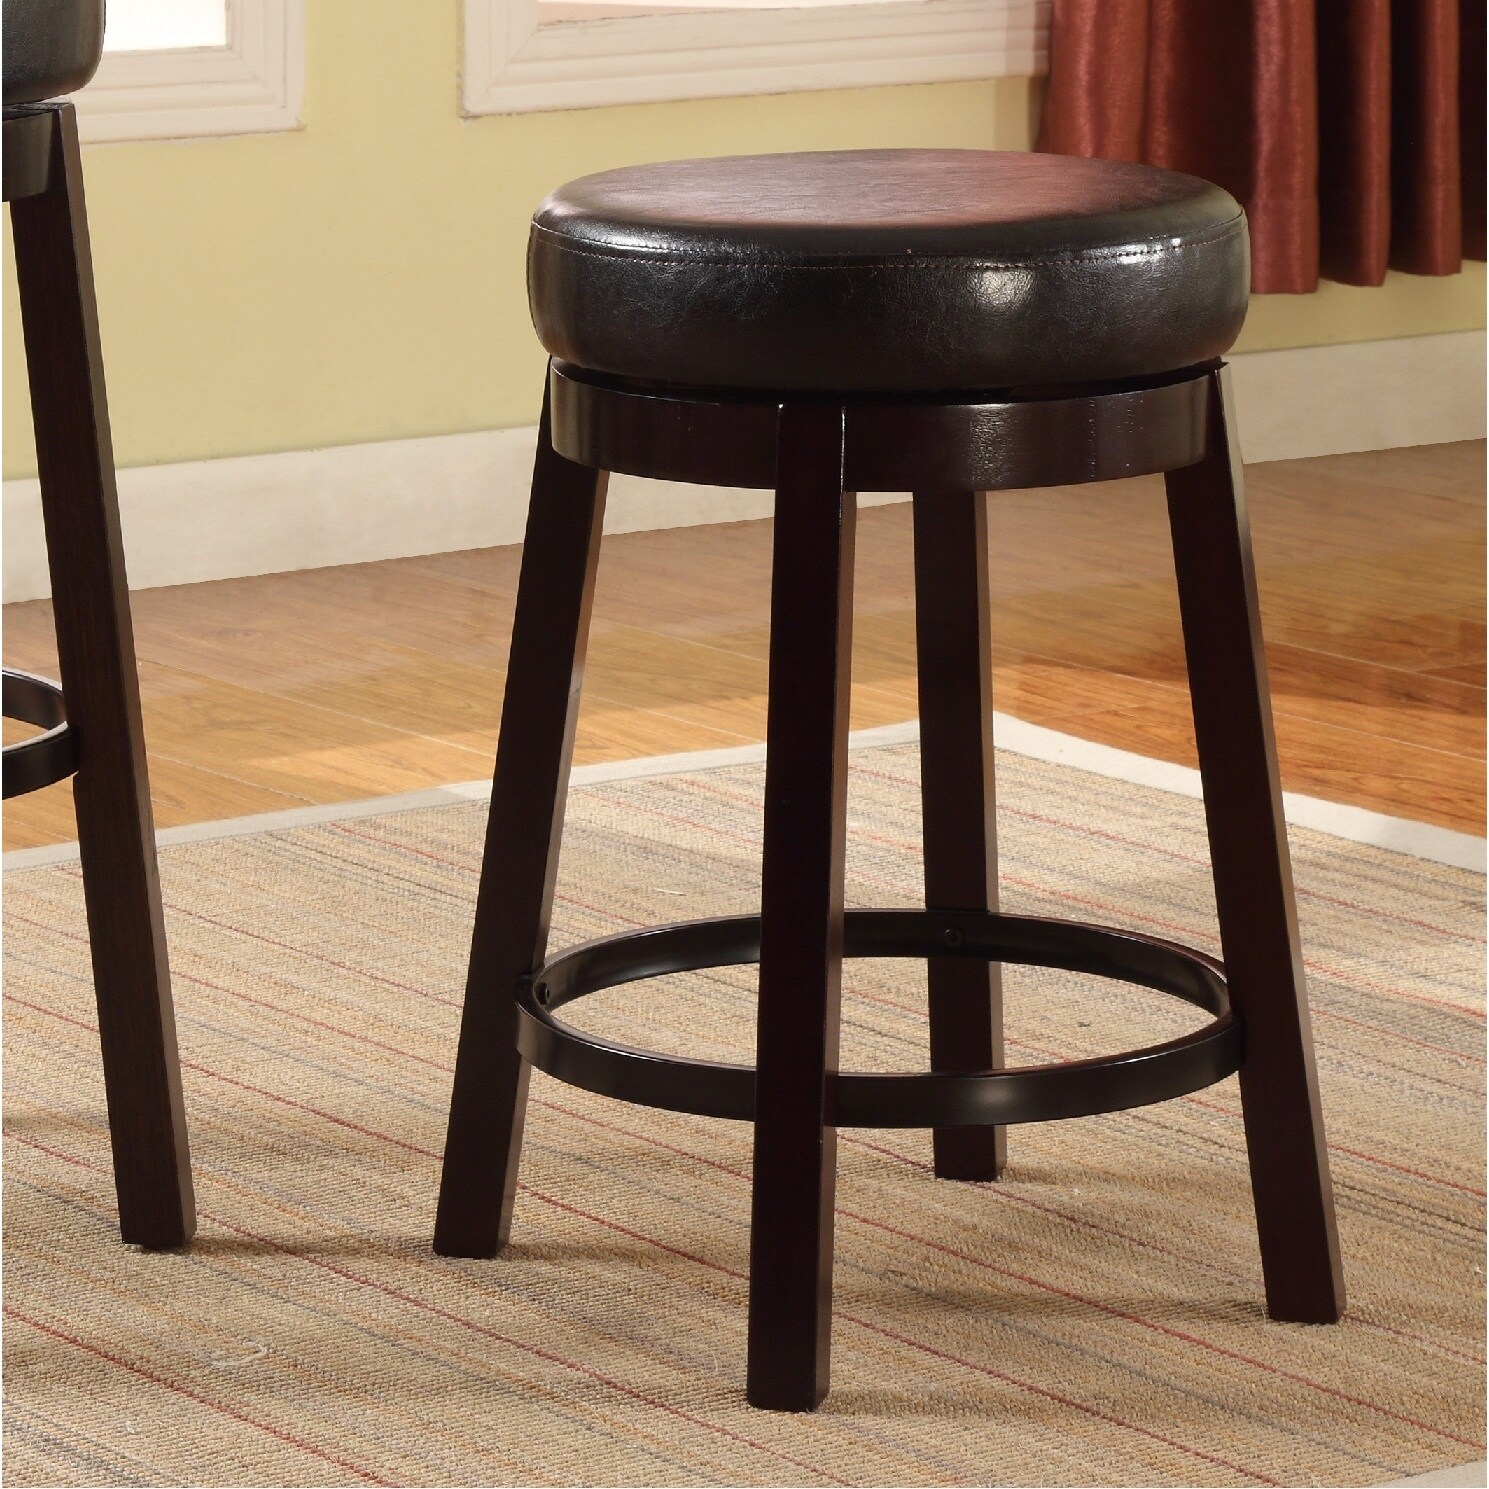 Swivel Counter Height Bar Stool With Leather Seat And